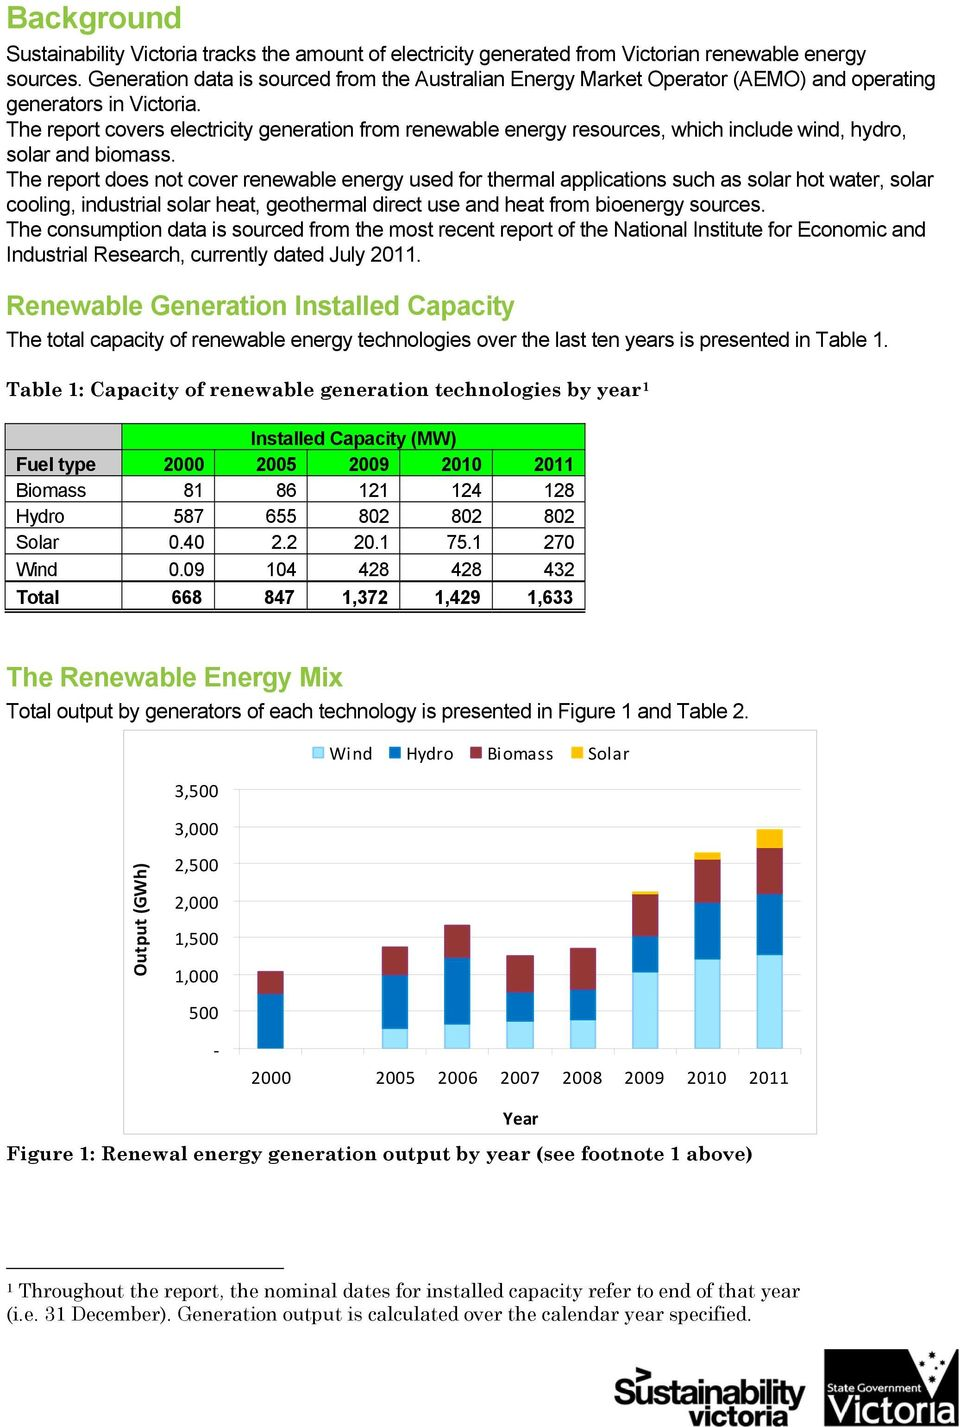 The report covers electricity generation from renewable energy resources, which include wind, hydro, solar and biomass.